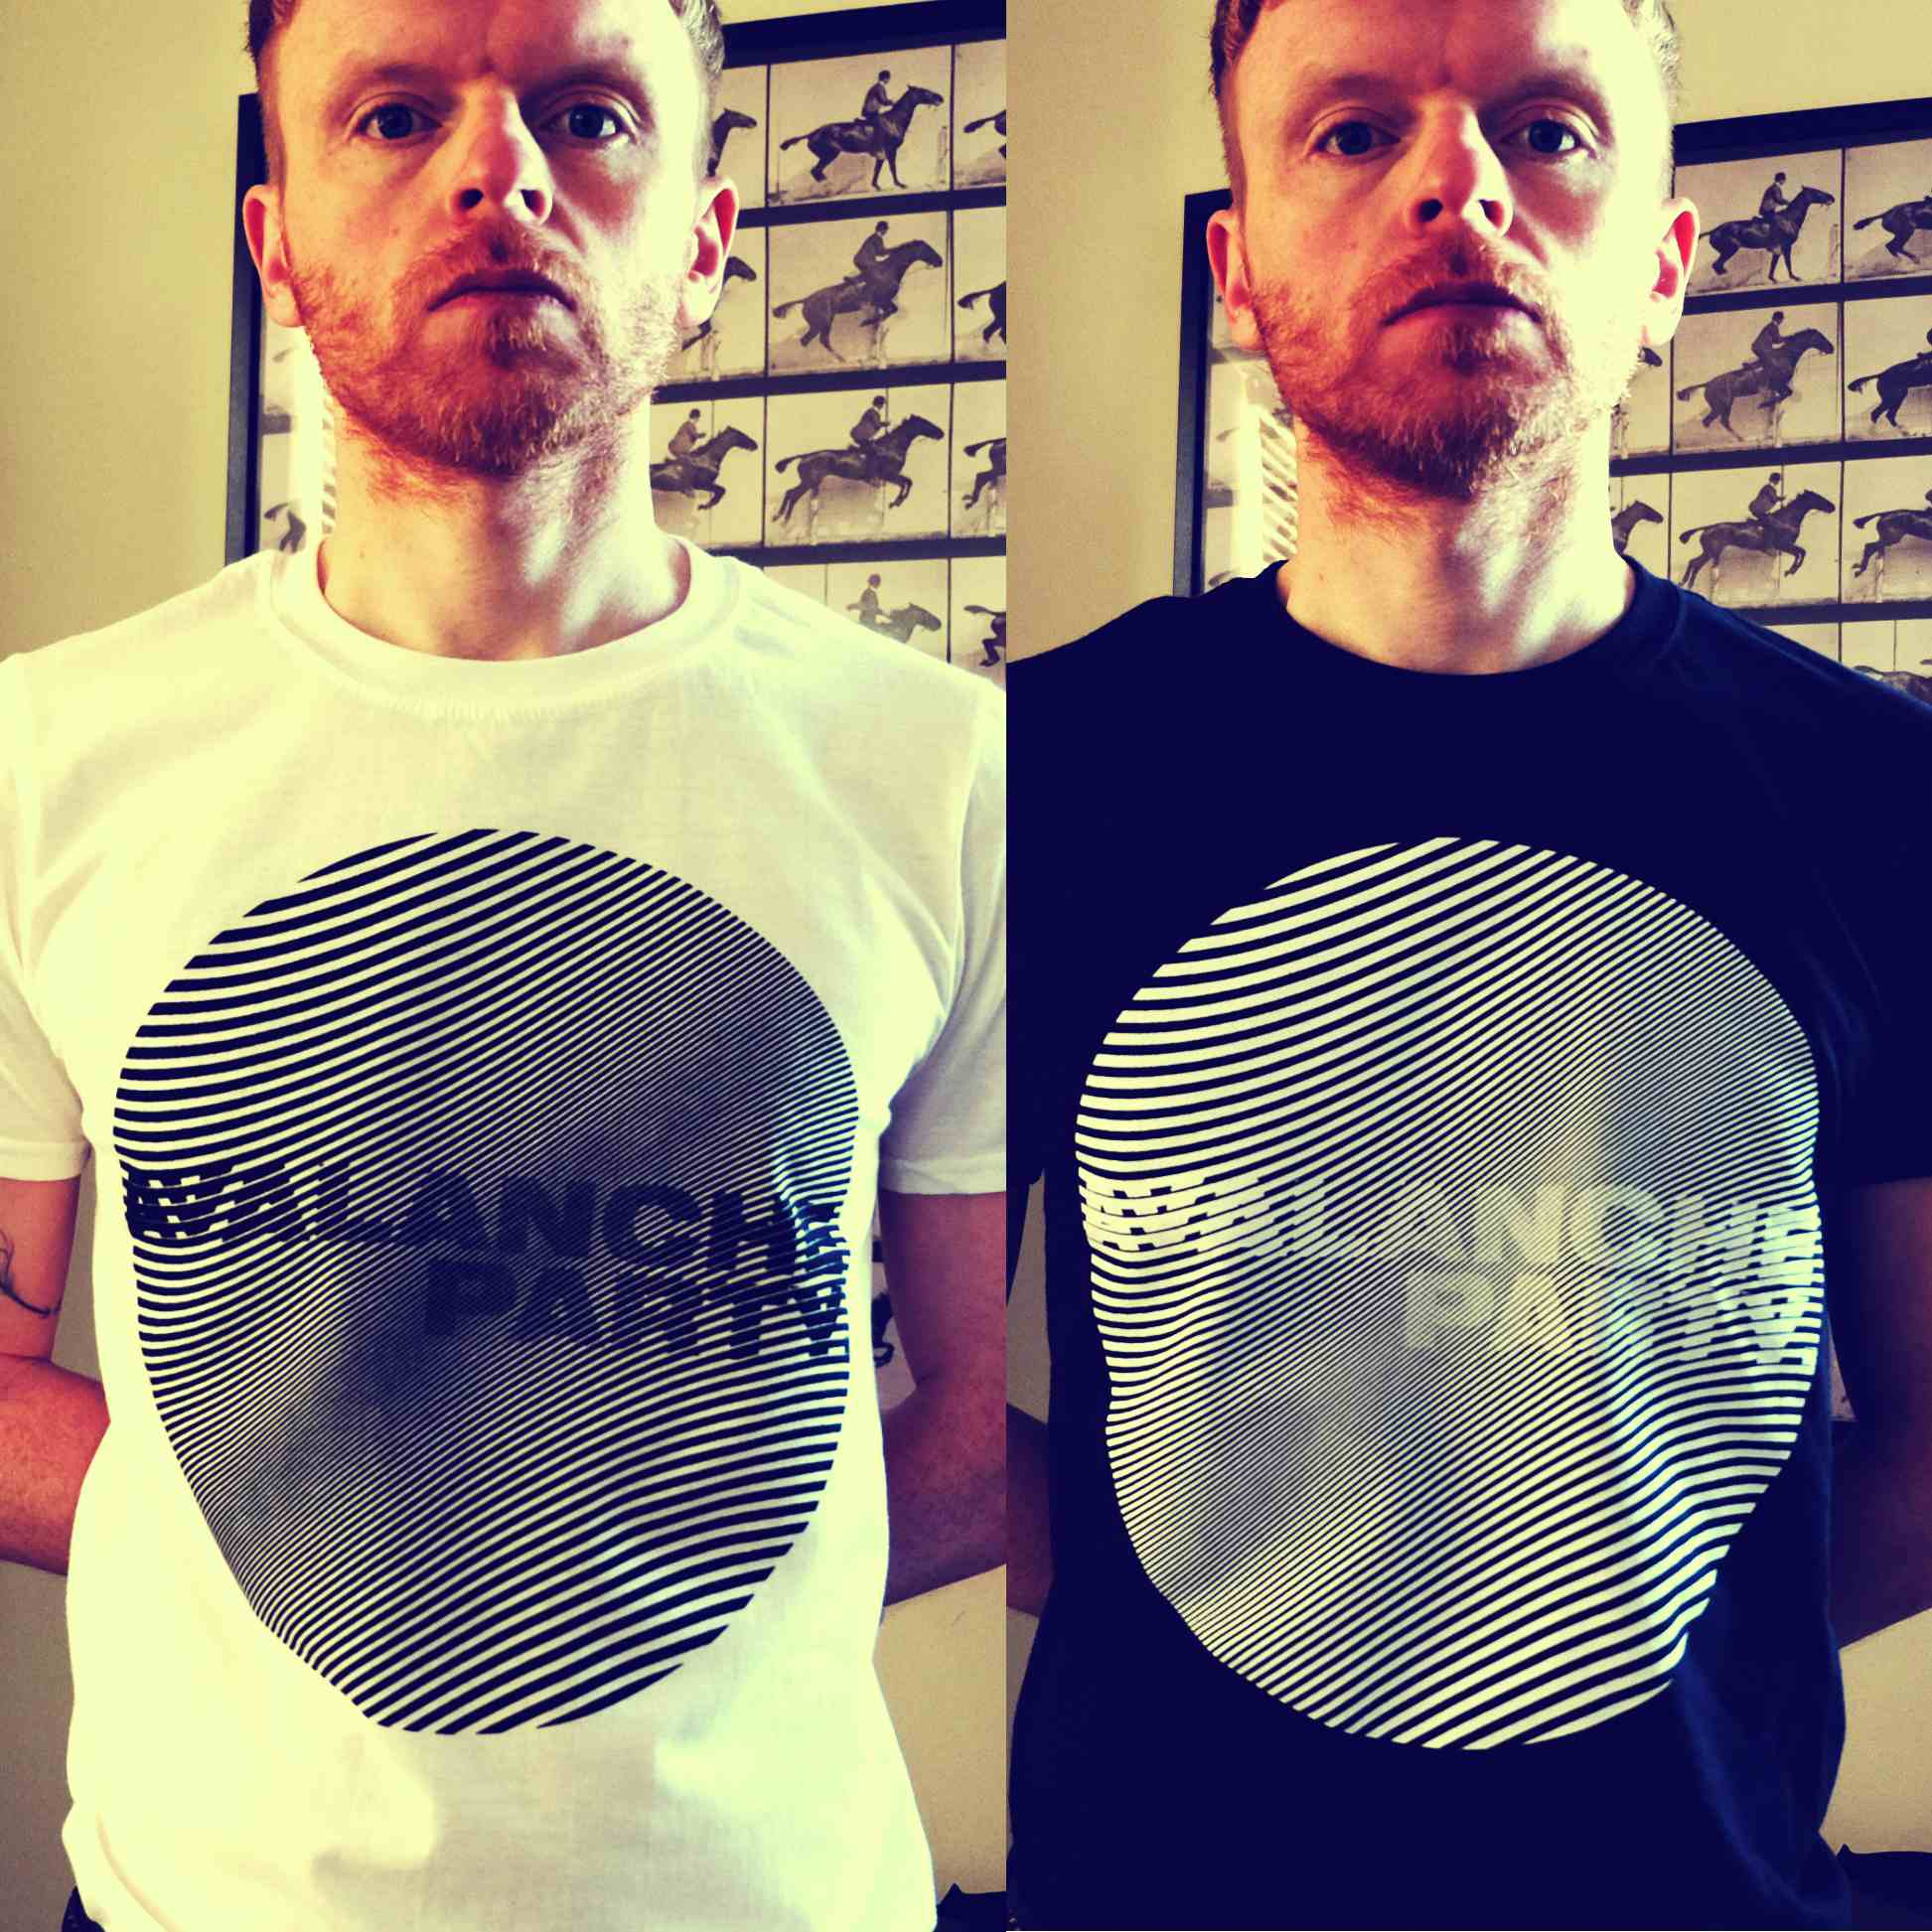 AVALANCHE PARTY PSYCH CIRCLE [T-SHIRT] - Clue Records